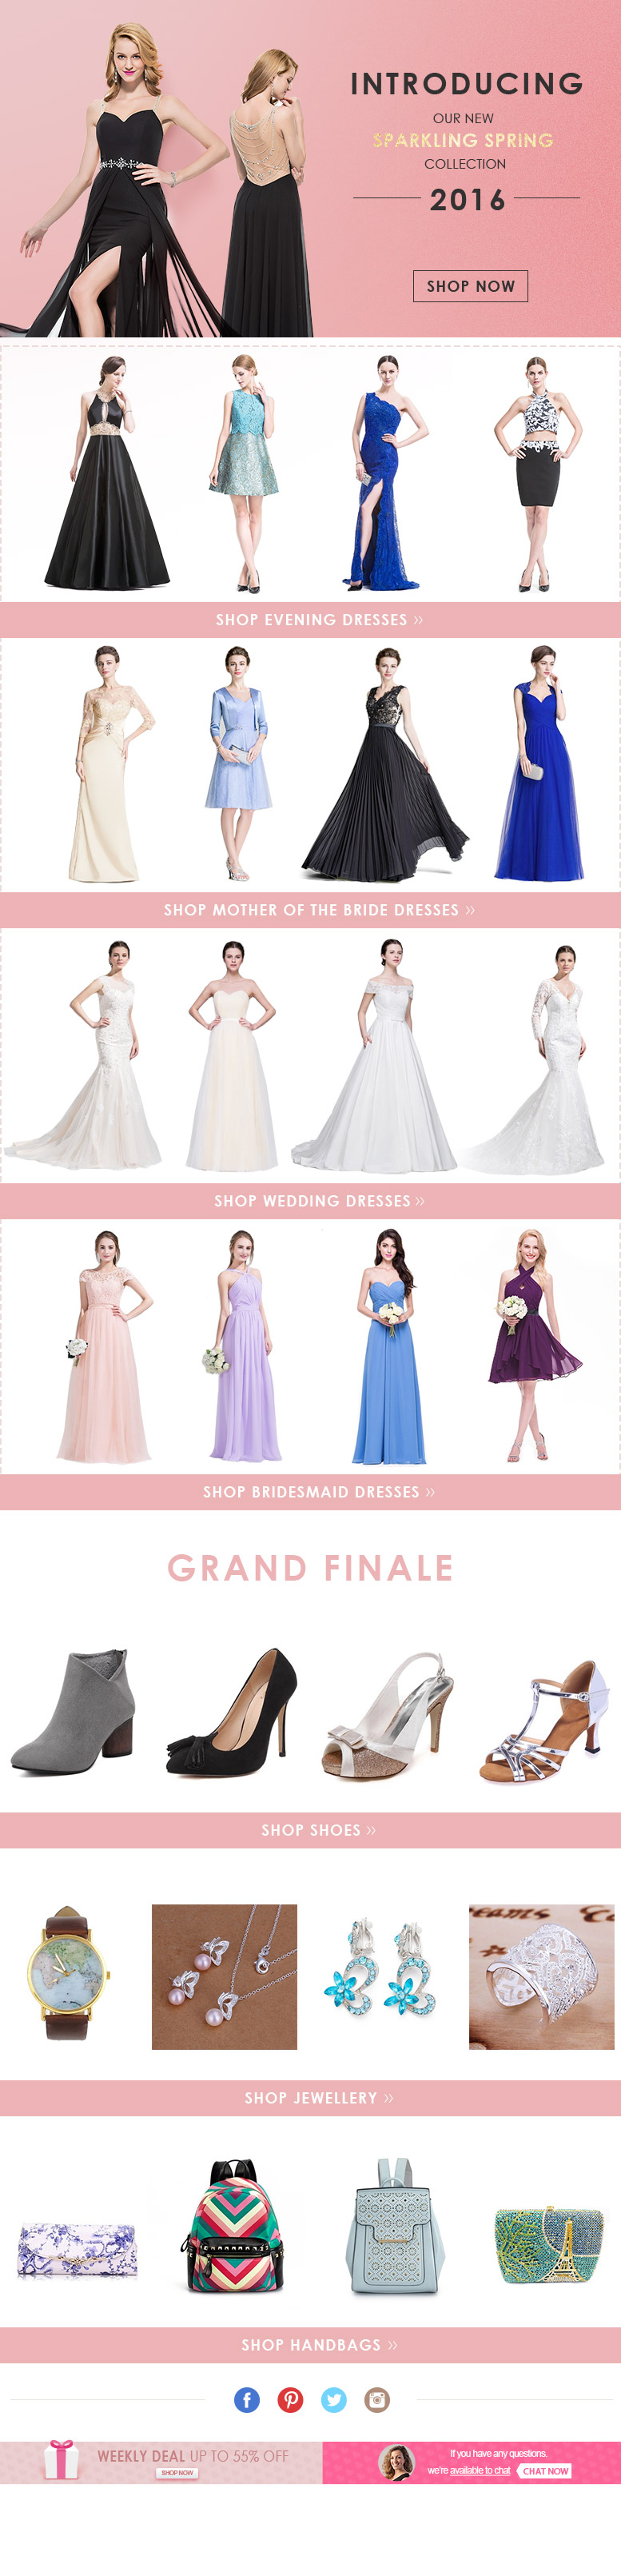 New Sparkling Spring Collection 2016 Up To 60 Off